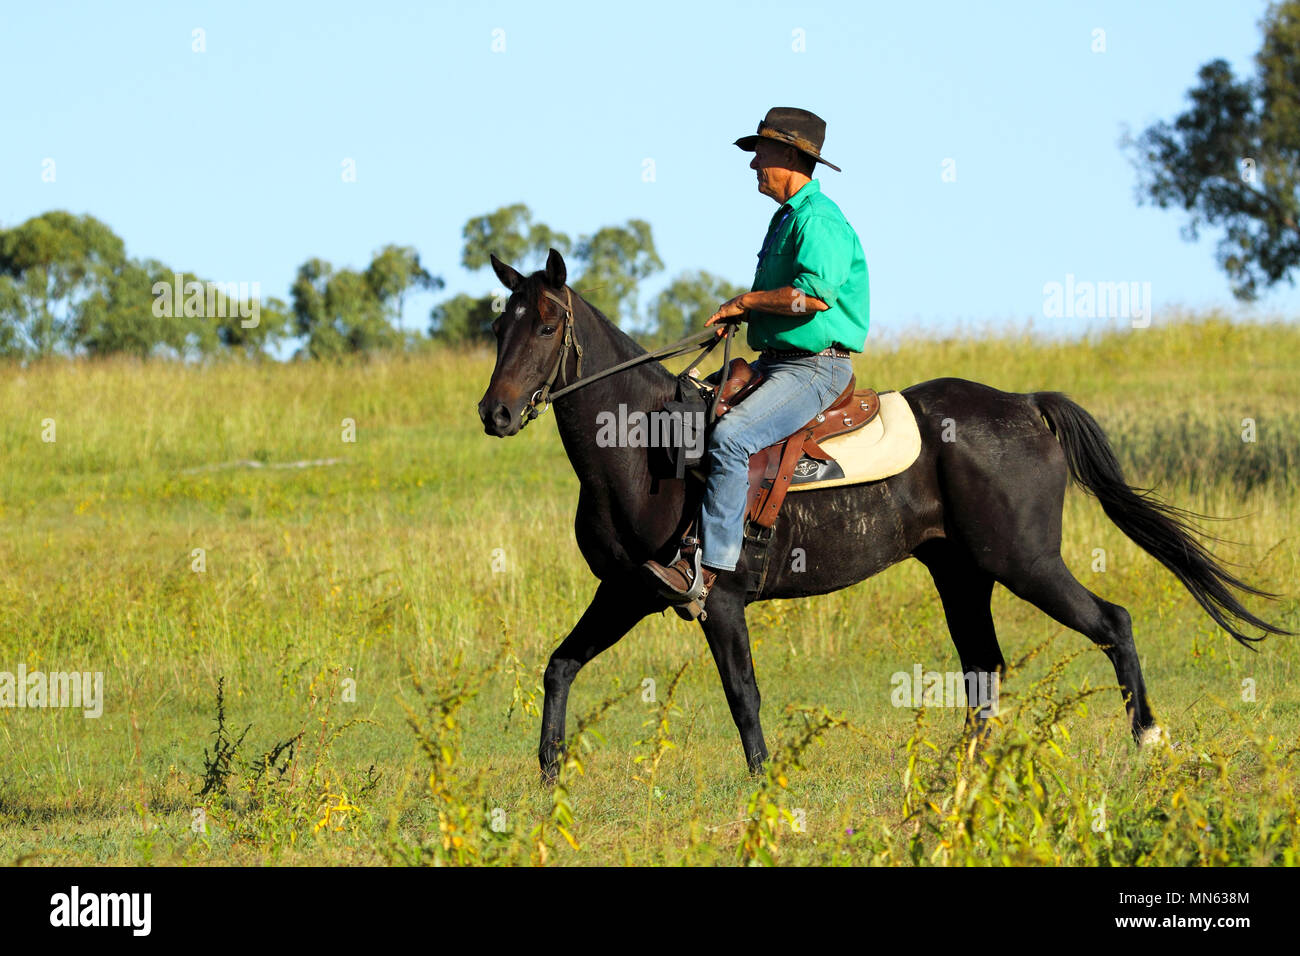 A cowboy in green shirt riding a horse on a farm. - Stock Image